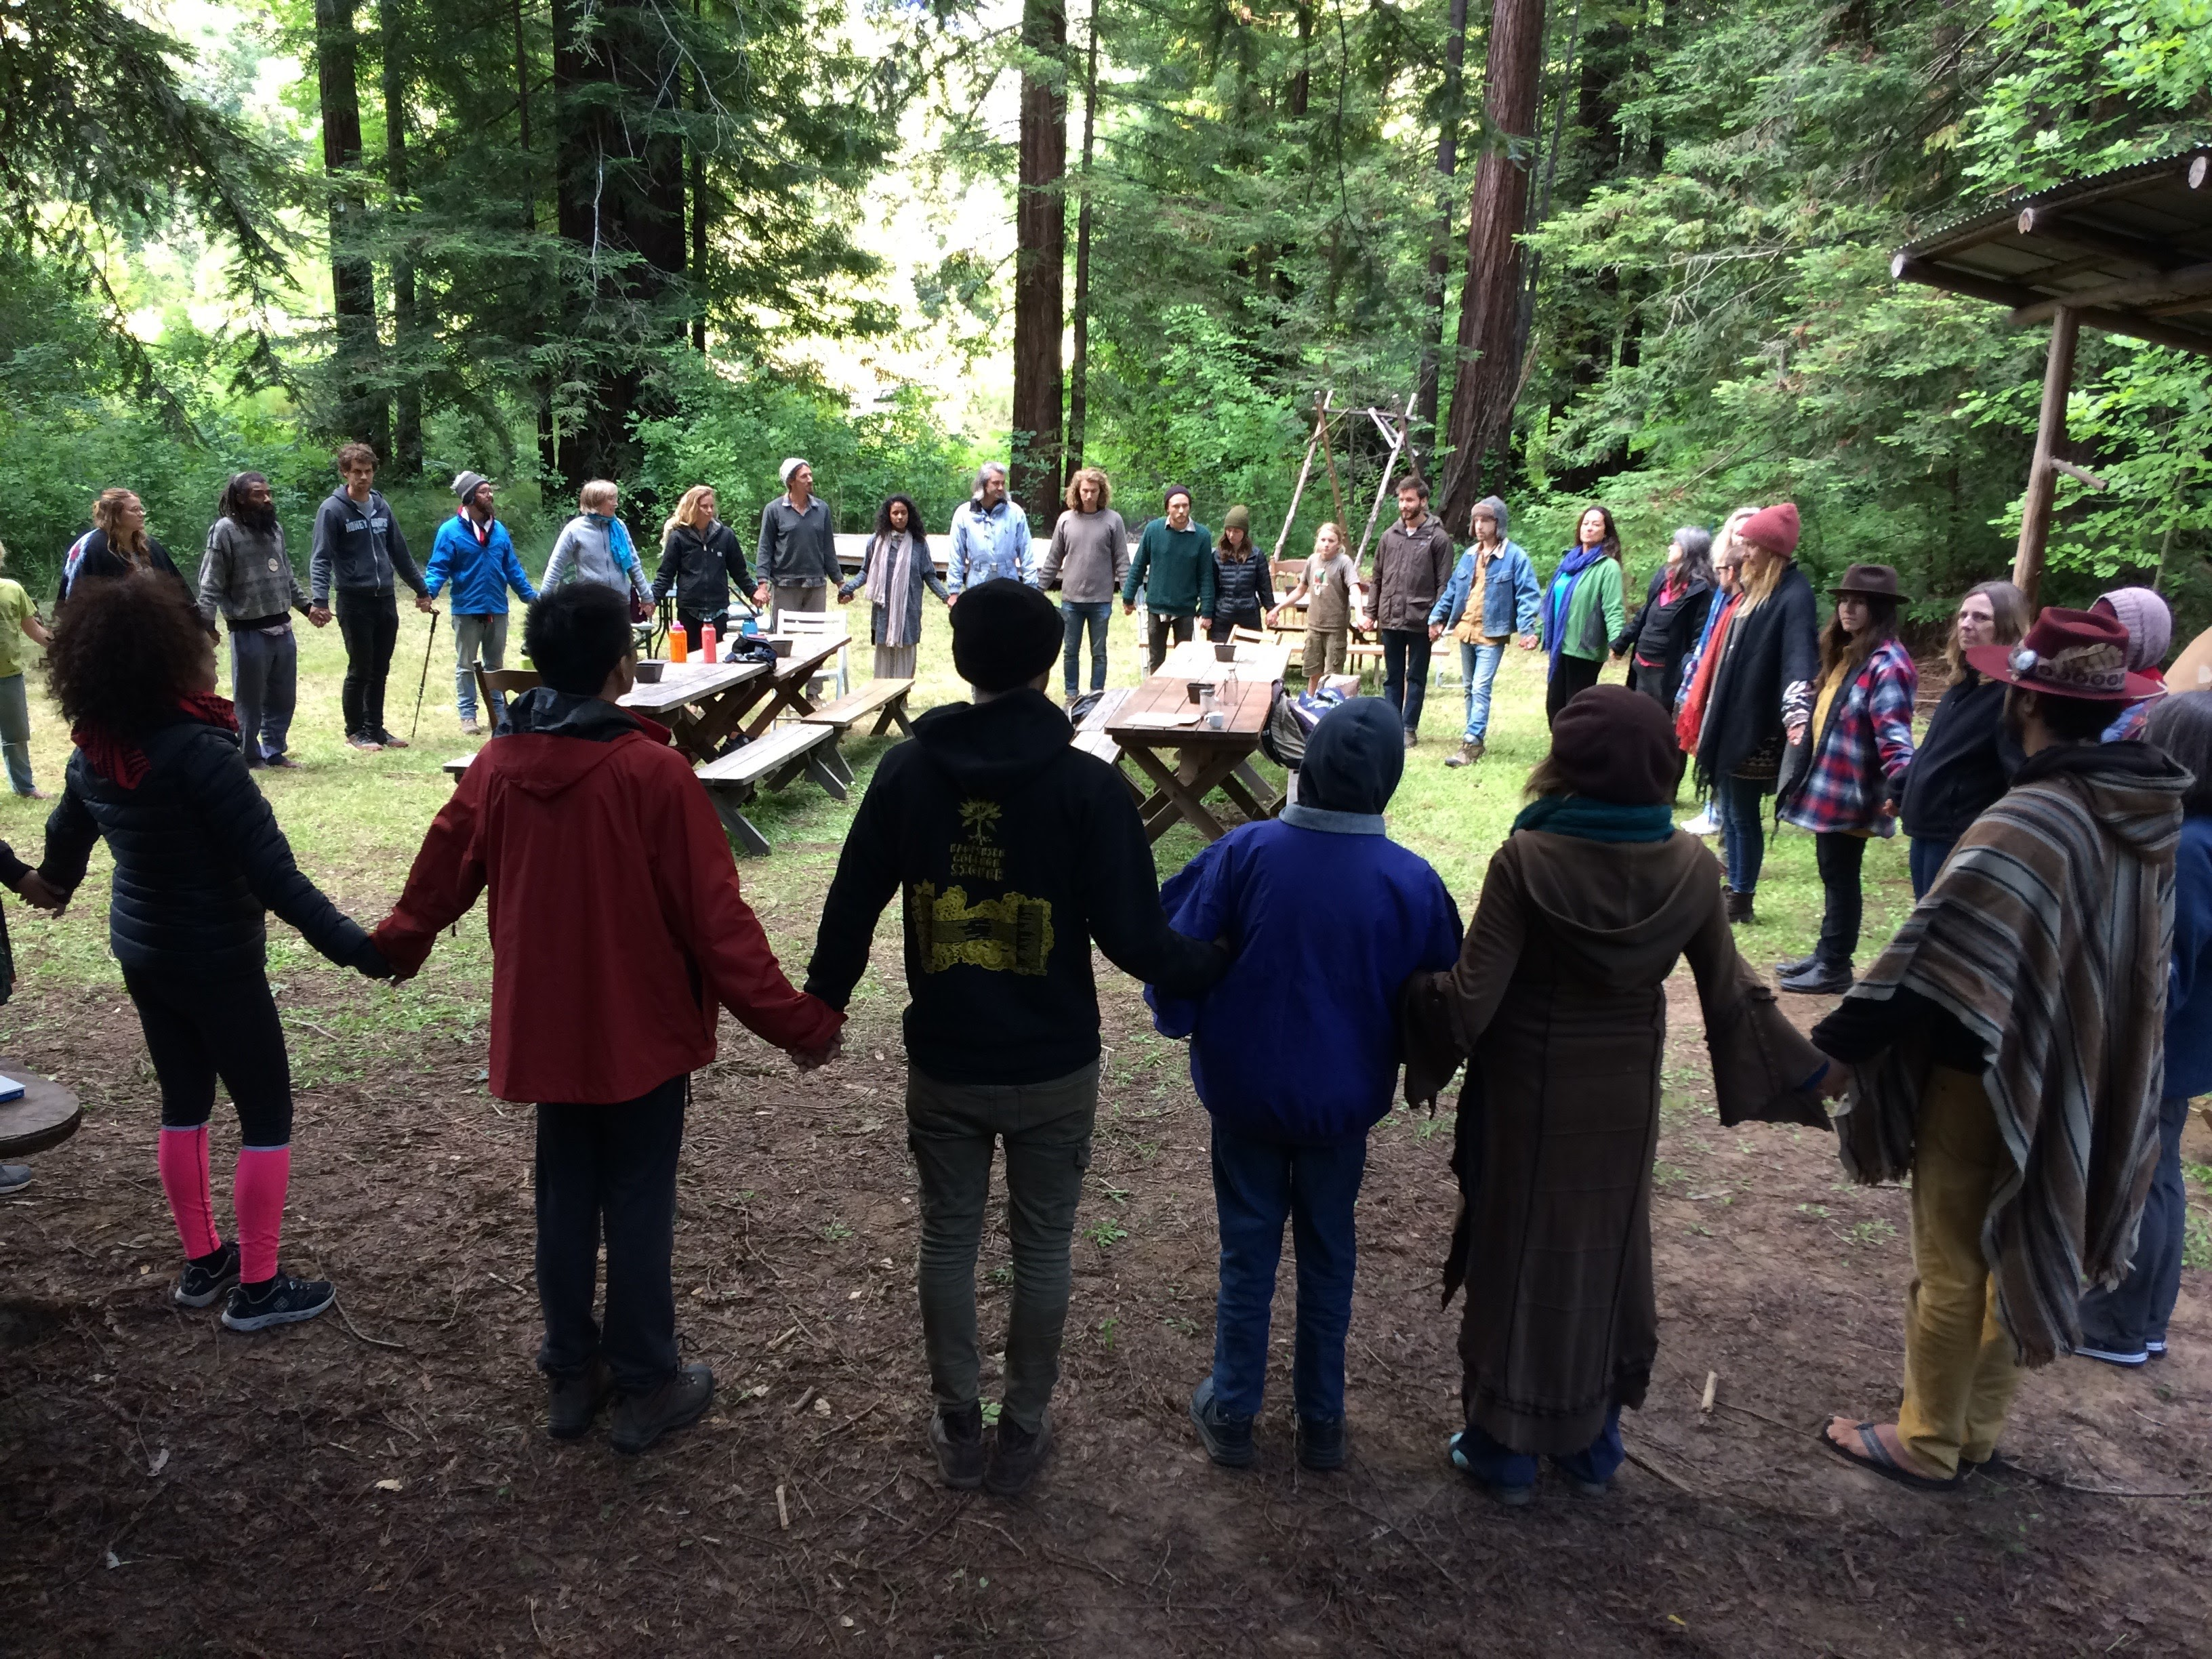 More than 30 people stand in a circle, all holding hands. There are two large wooden tables in the center of their circle. The group is outdoors and in the background there are tall trees.